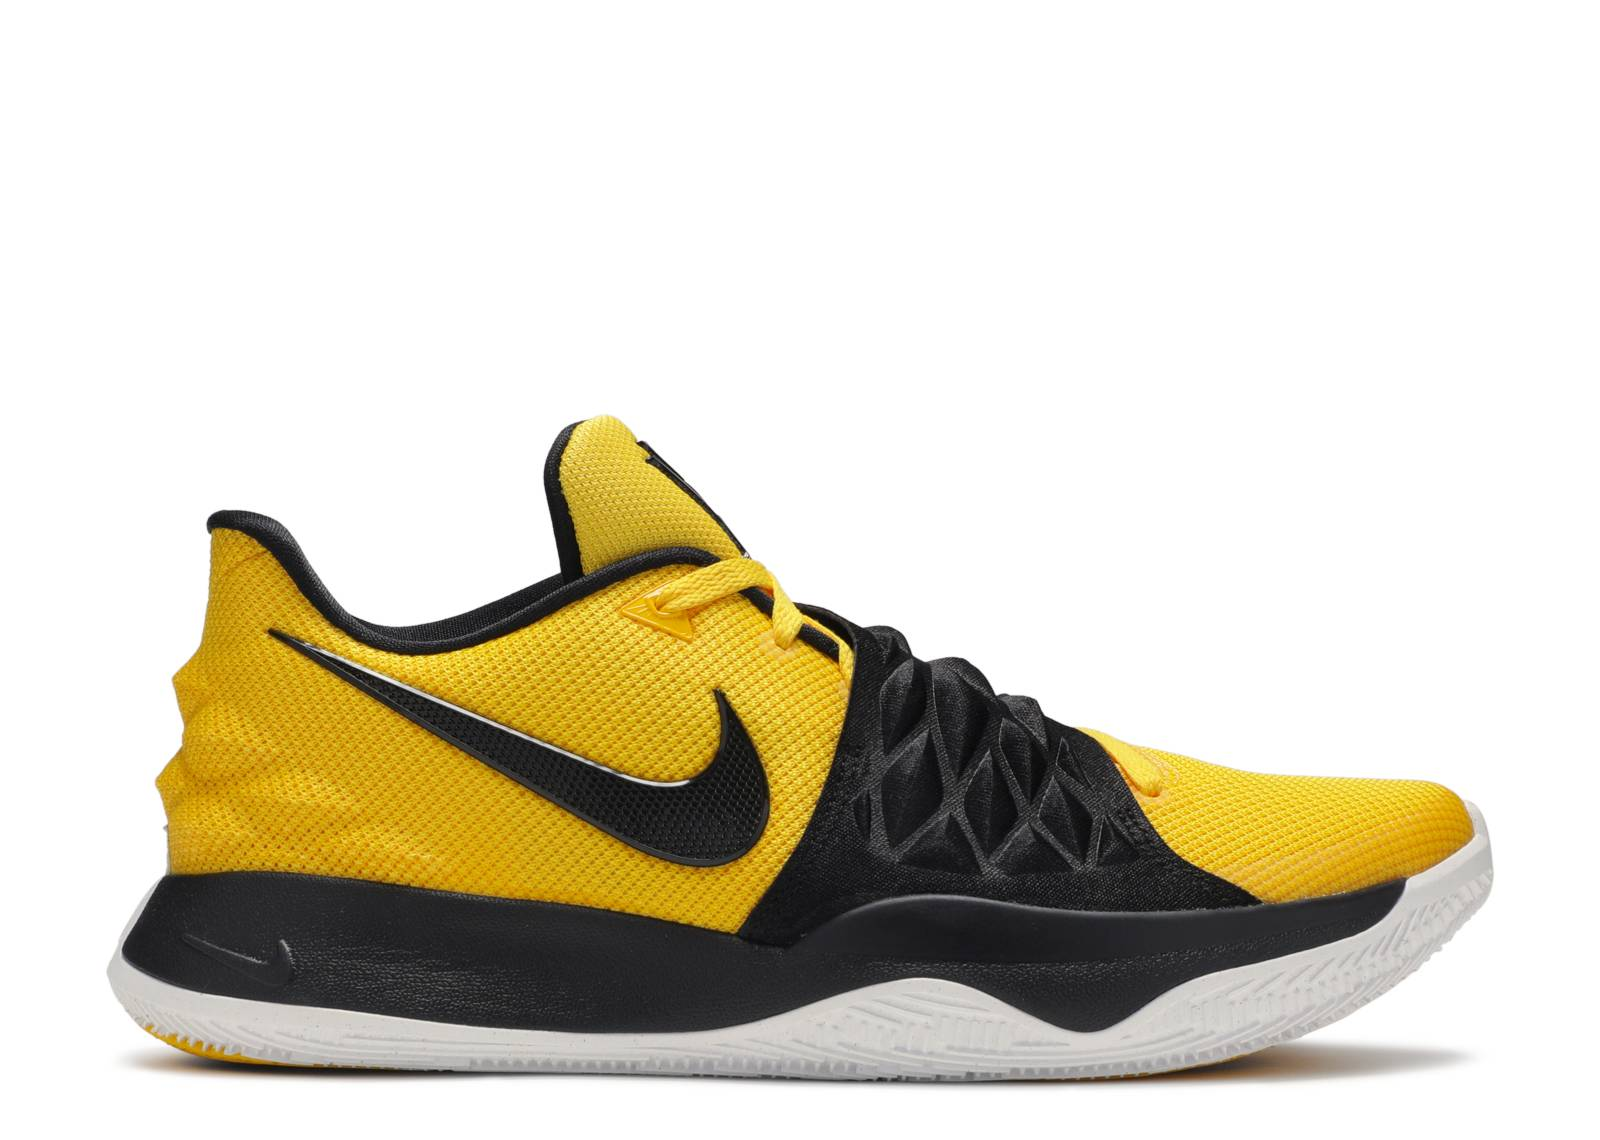 half off ec135 4ff65 Kyrie Irving - Nike Basketball - Nike | Flight Club